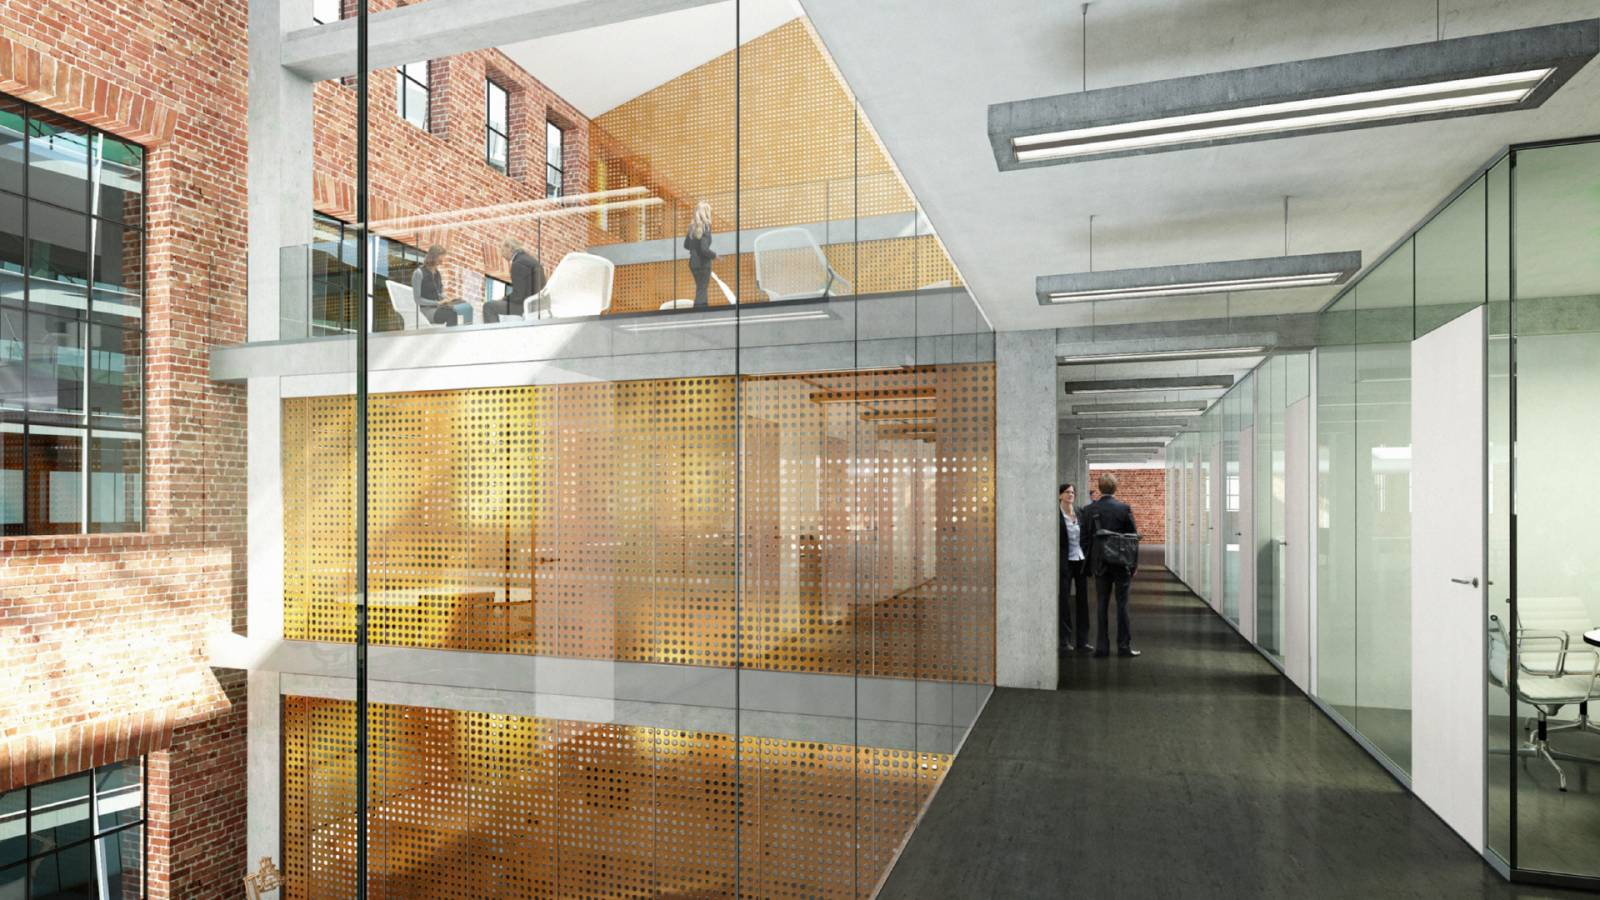 OFFICE CONCEPT - Akers Mek Verksted - SPOL Architects